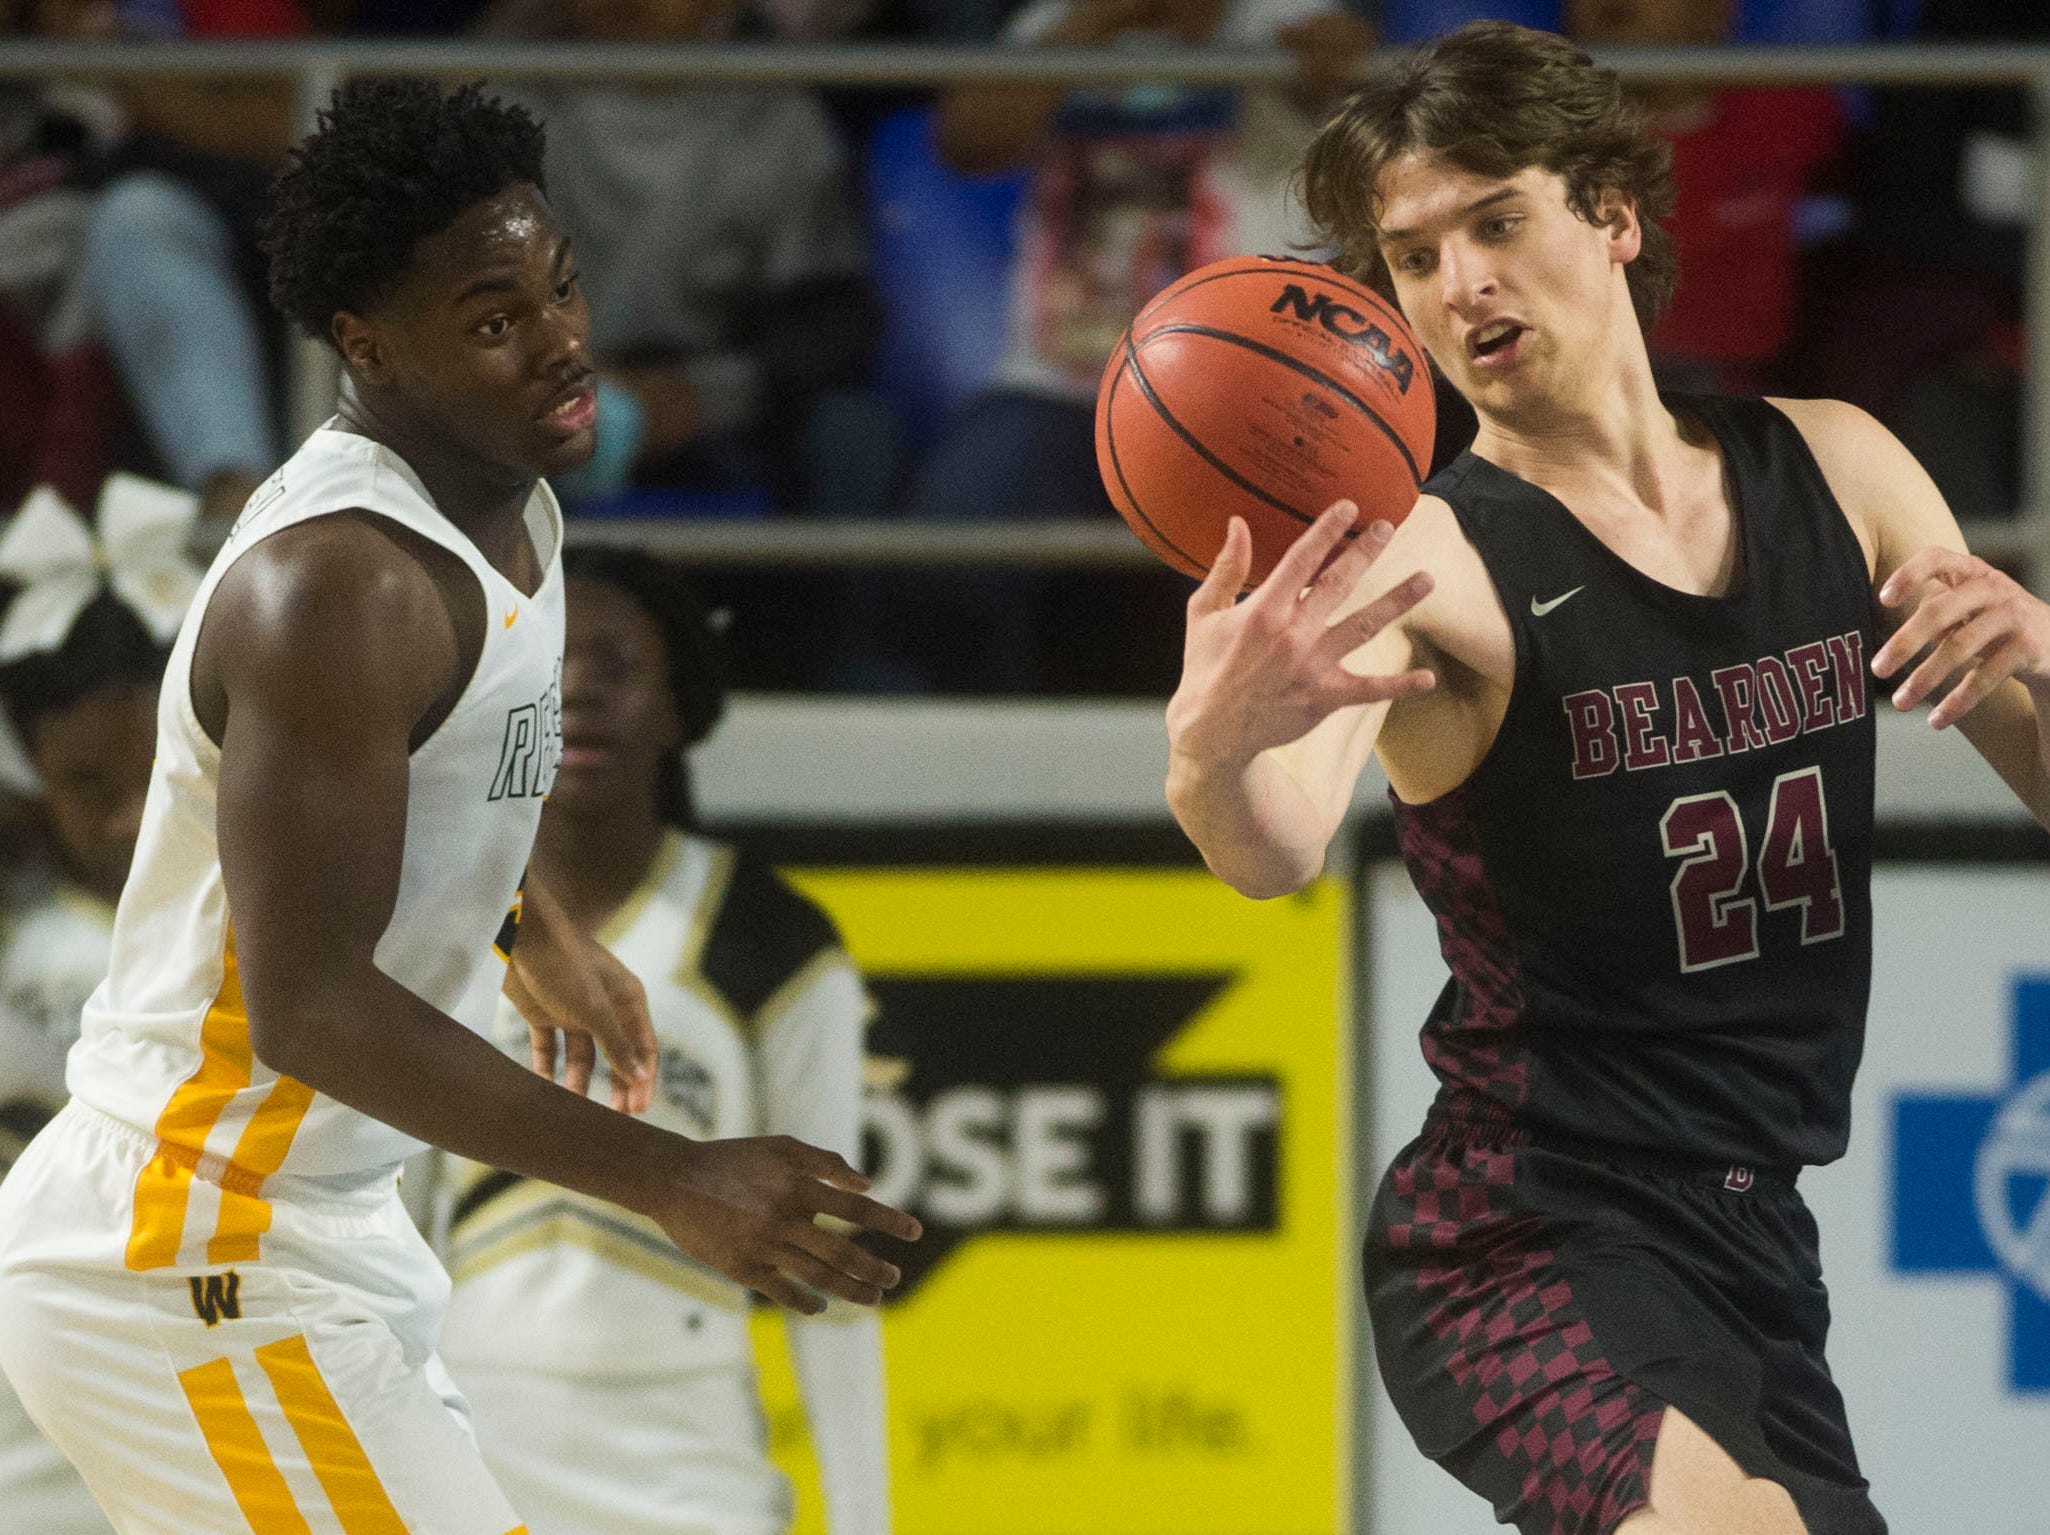 Bearden's Kordell Kah (24) attempts to maintain possession of the ball during a TSSAA AAA state semifinal game between Whitehaven and Bearden at the Murphy Center in Murfreesboro, Friday, March 15, 2019. Bearden defeated Whitehaven 76-60.